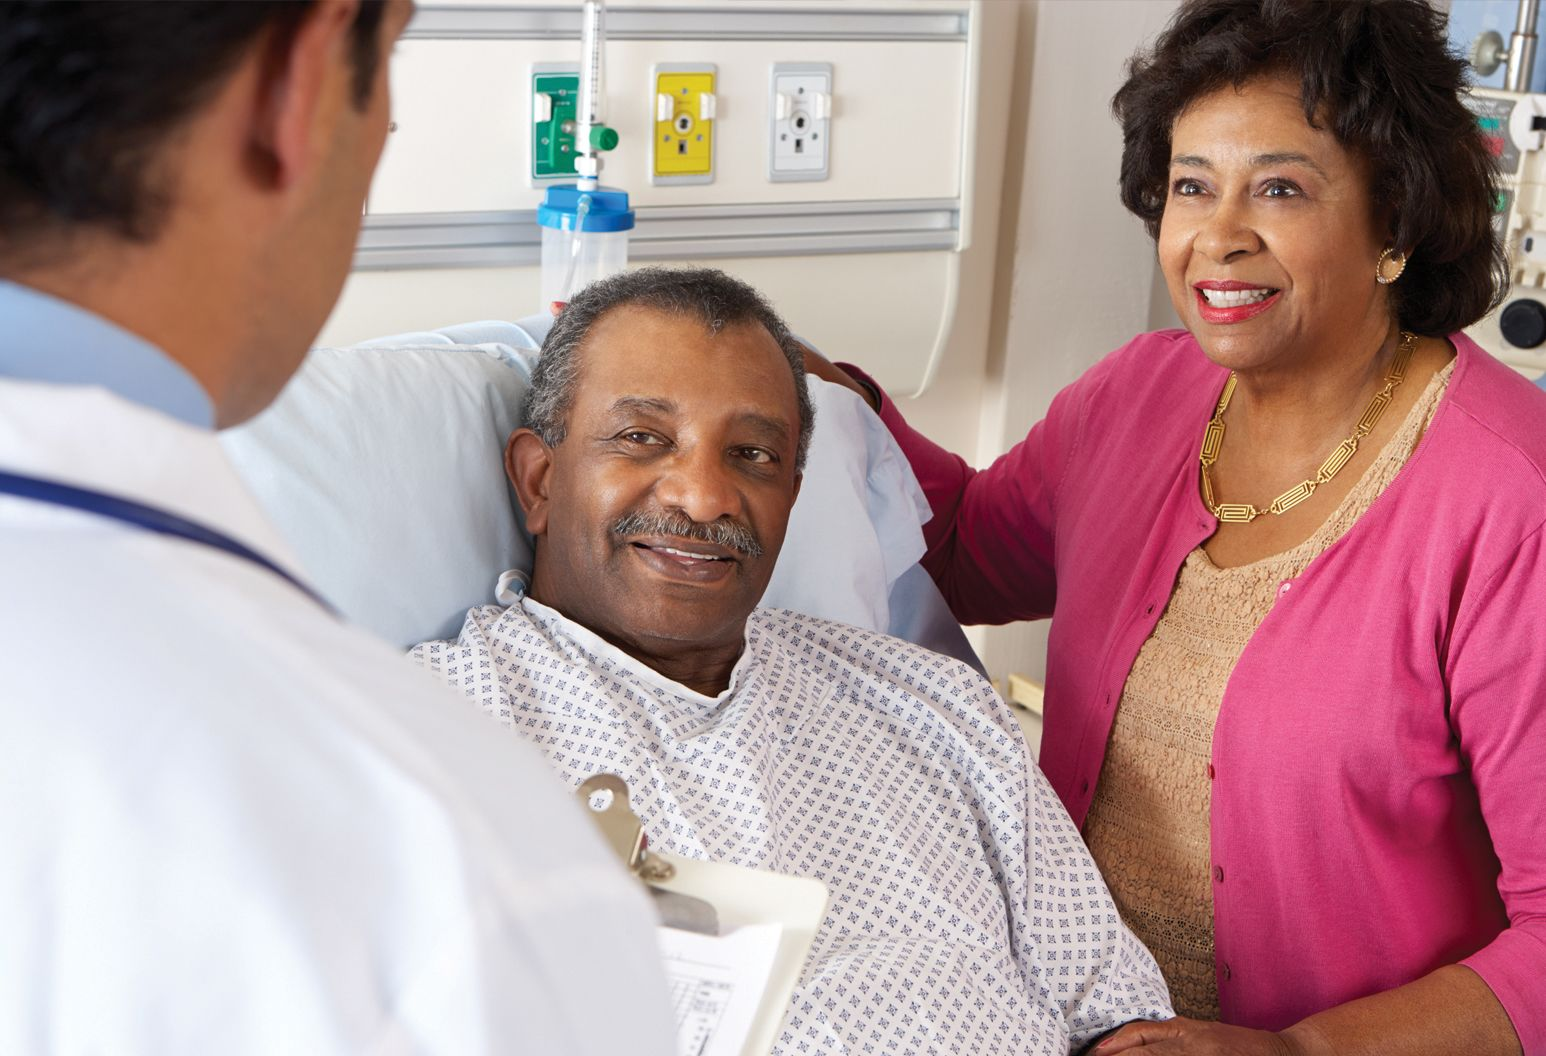 A black man sits in a hospital bed with his wife next to him